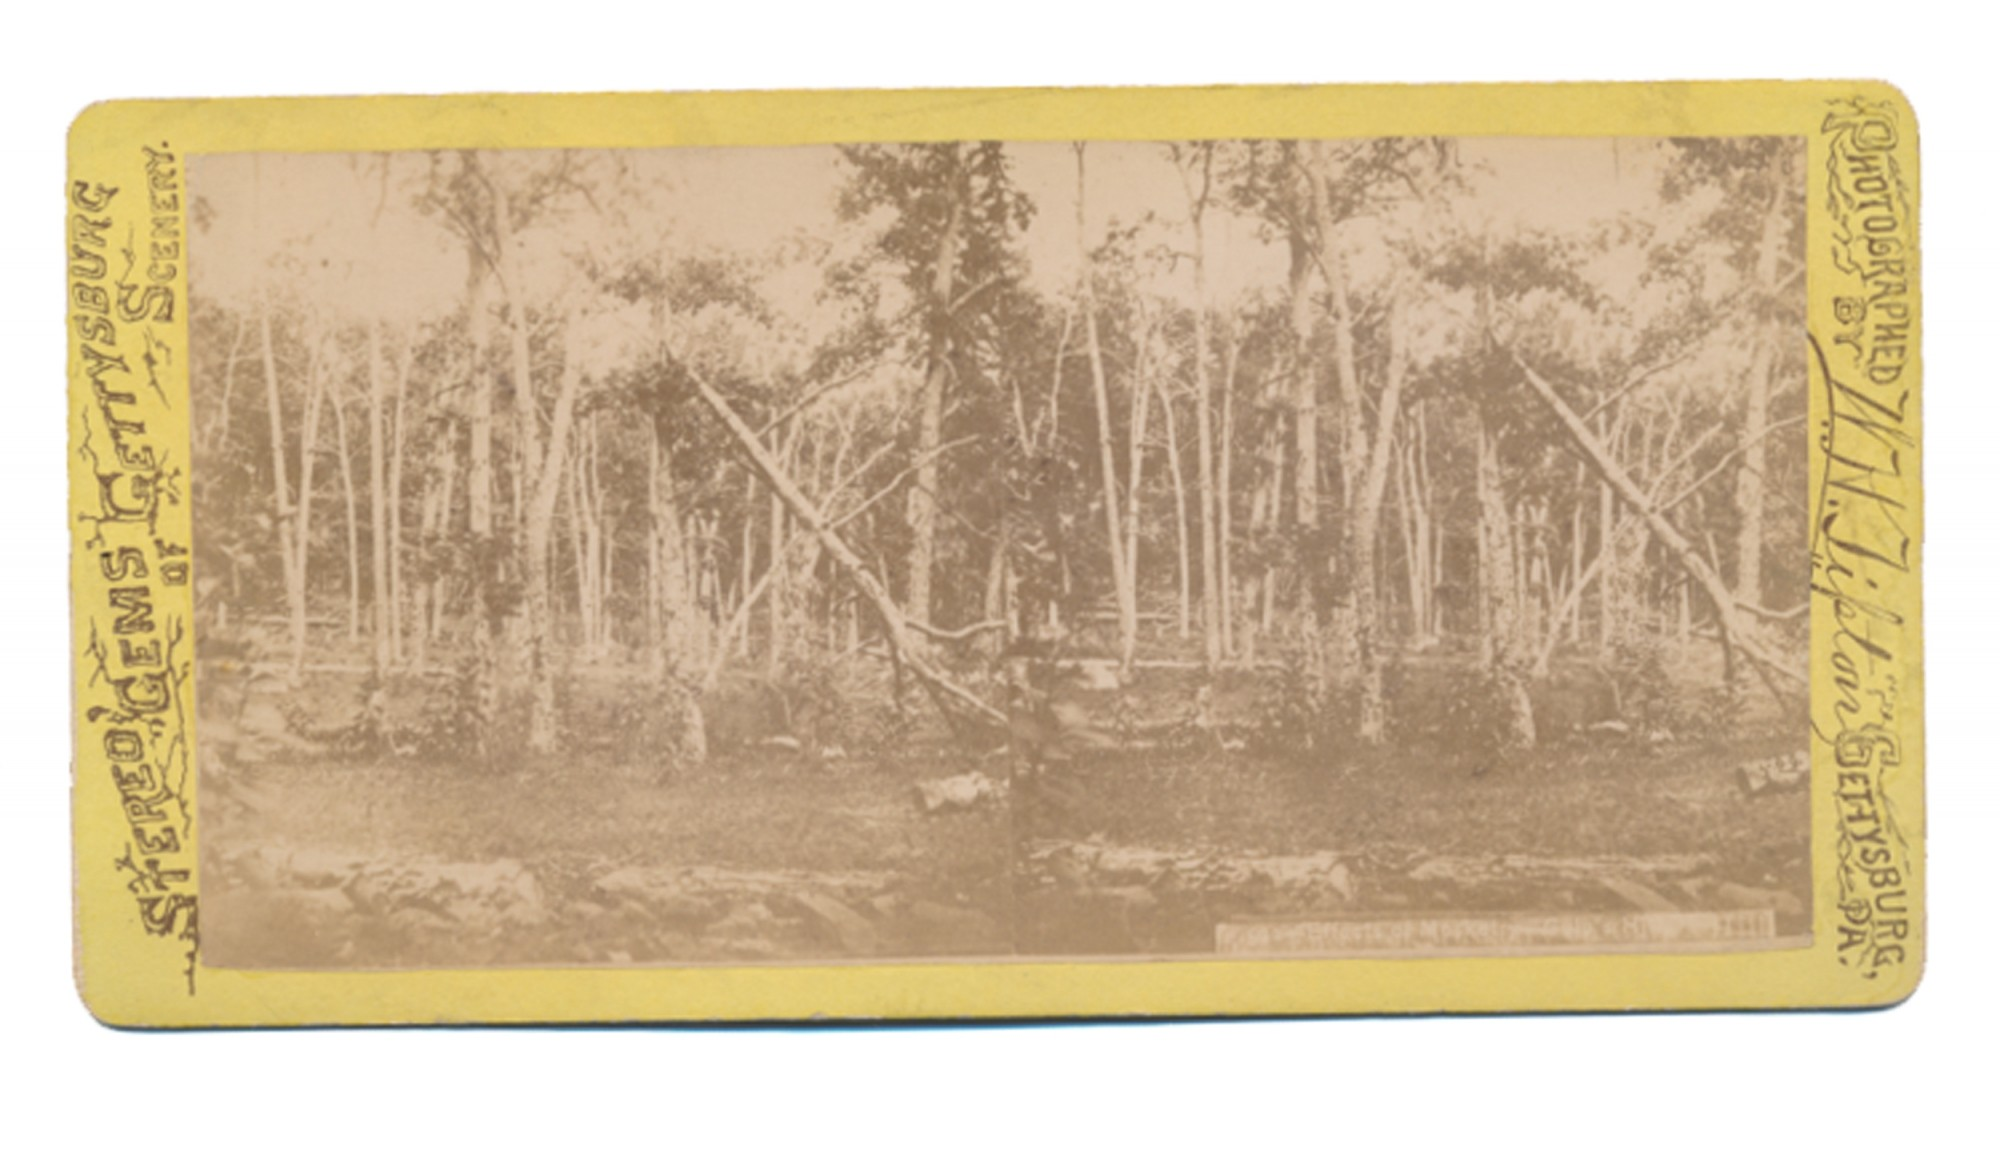 TIPTON STEREOVIEW OF THE BATTERED WOODS ON CULP'S HILL